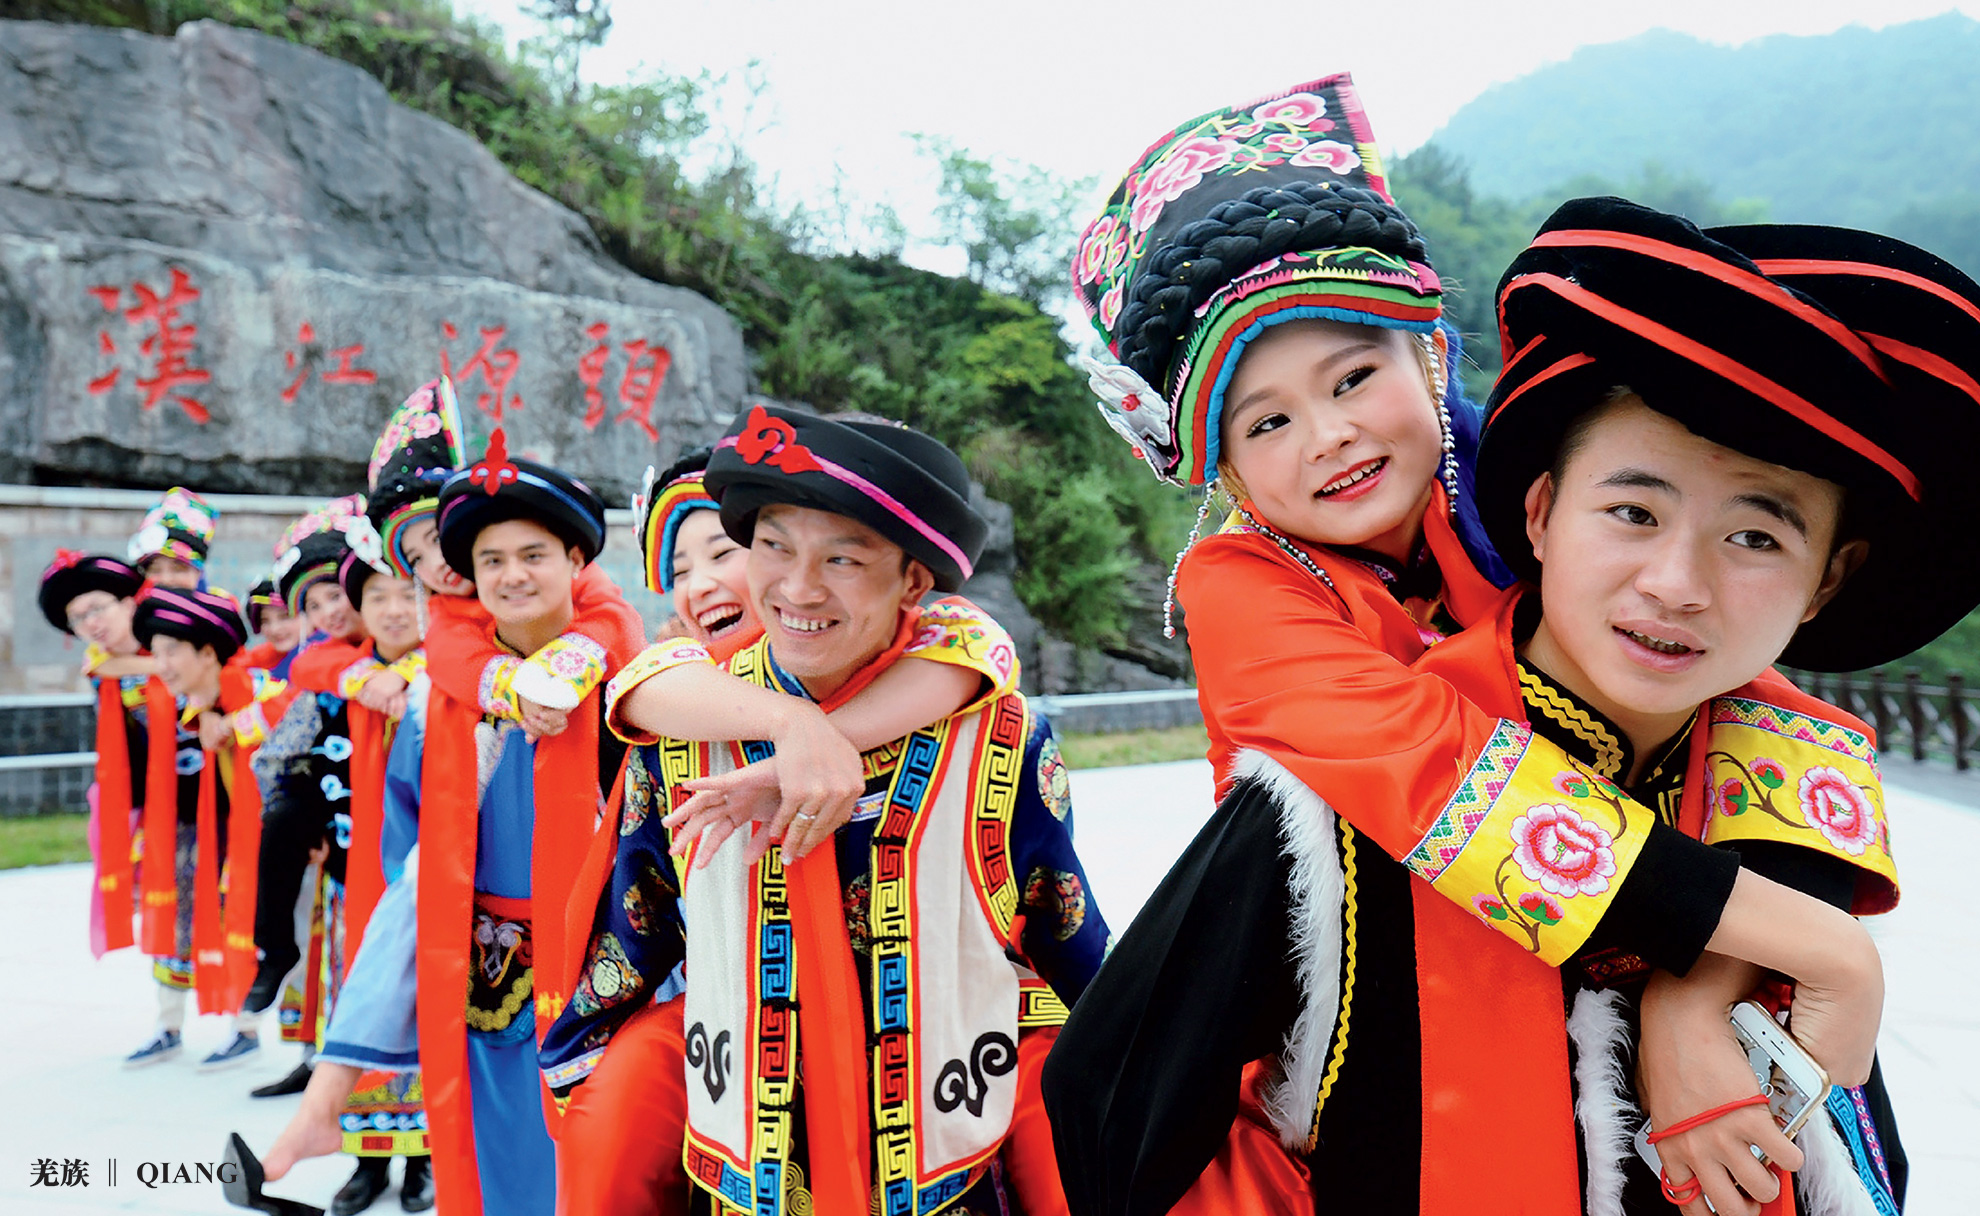 Splendid Costumes of Chinese Ethnic Groups